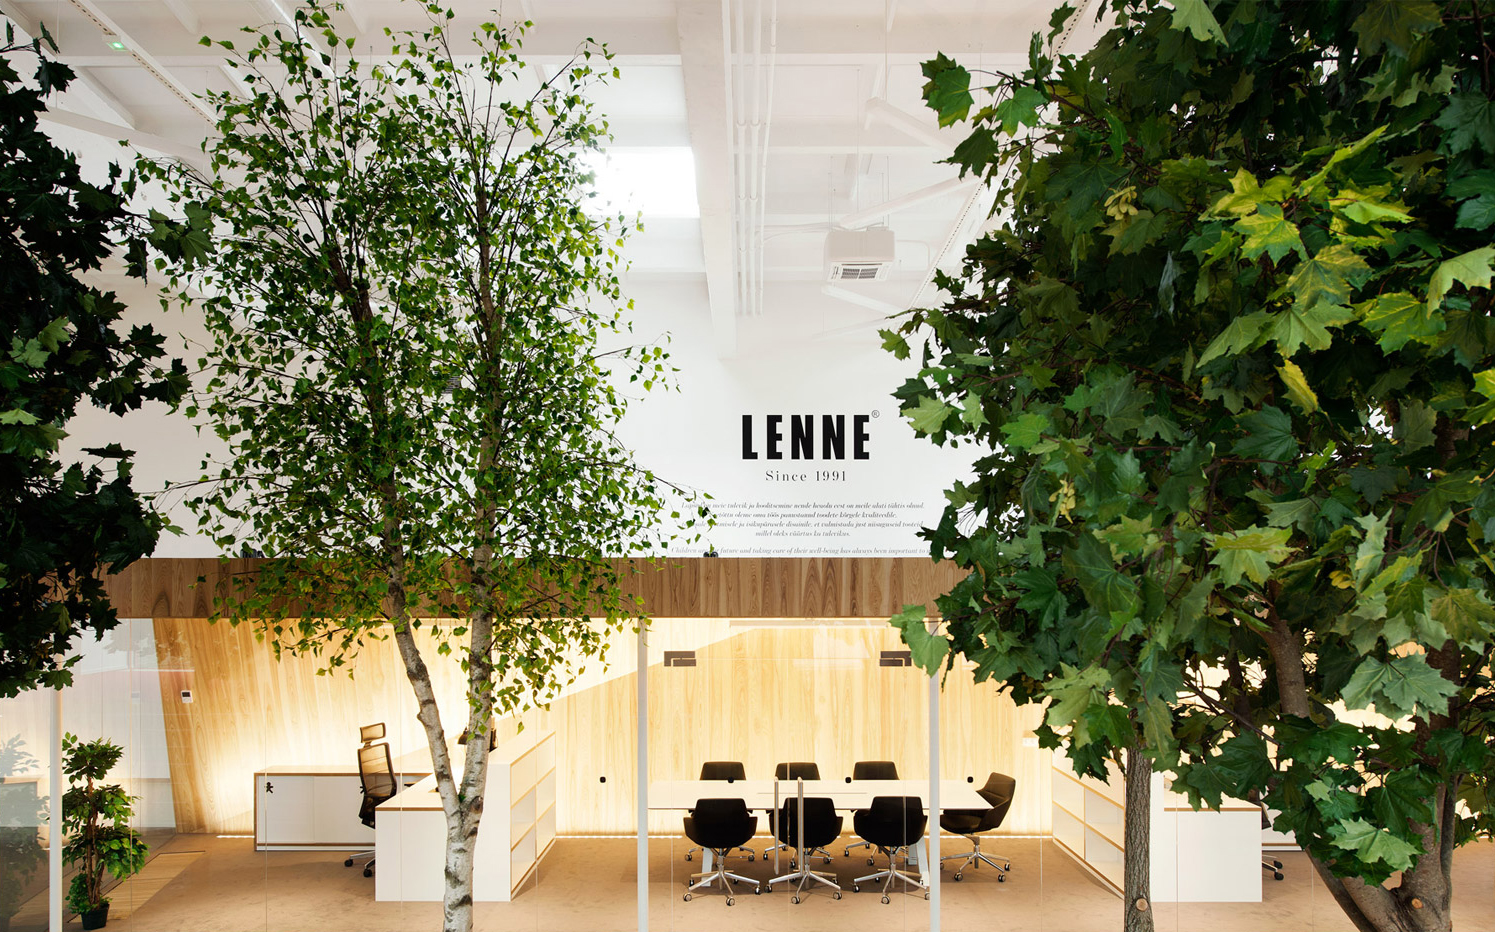 Office-Lenne_Estonia_KAMP-Arhitektid_dezeen_1568_10_cut